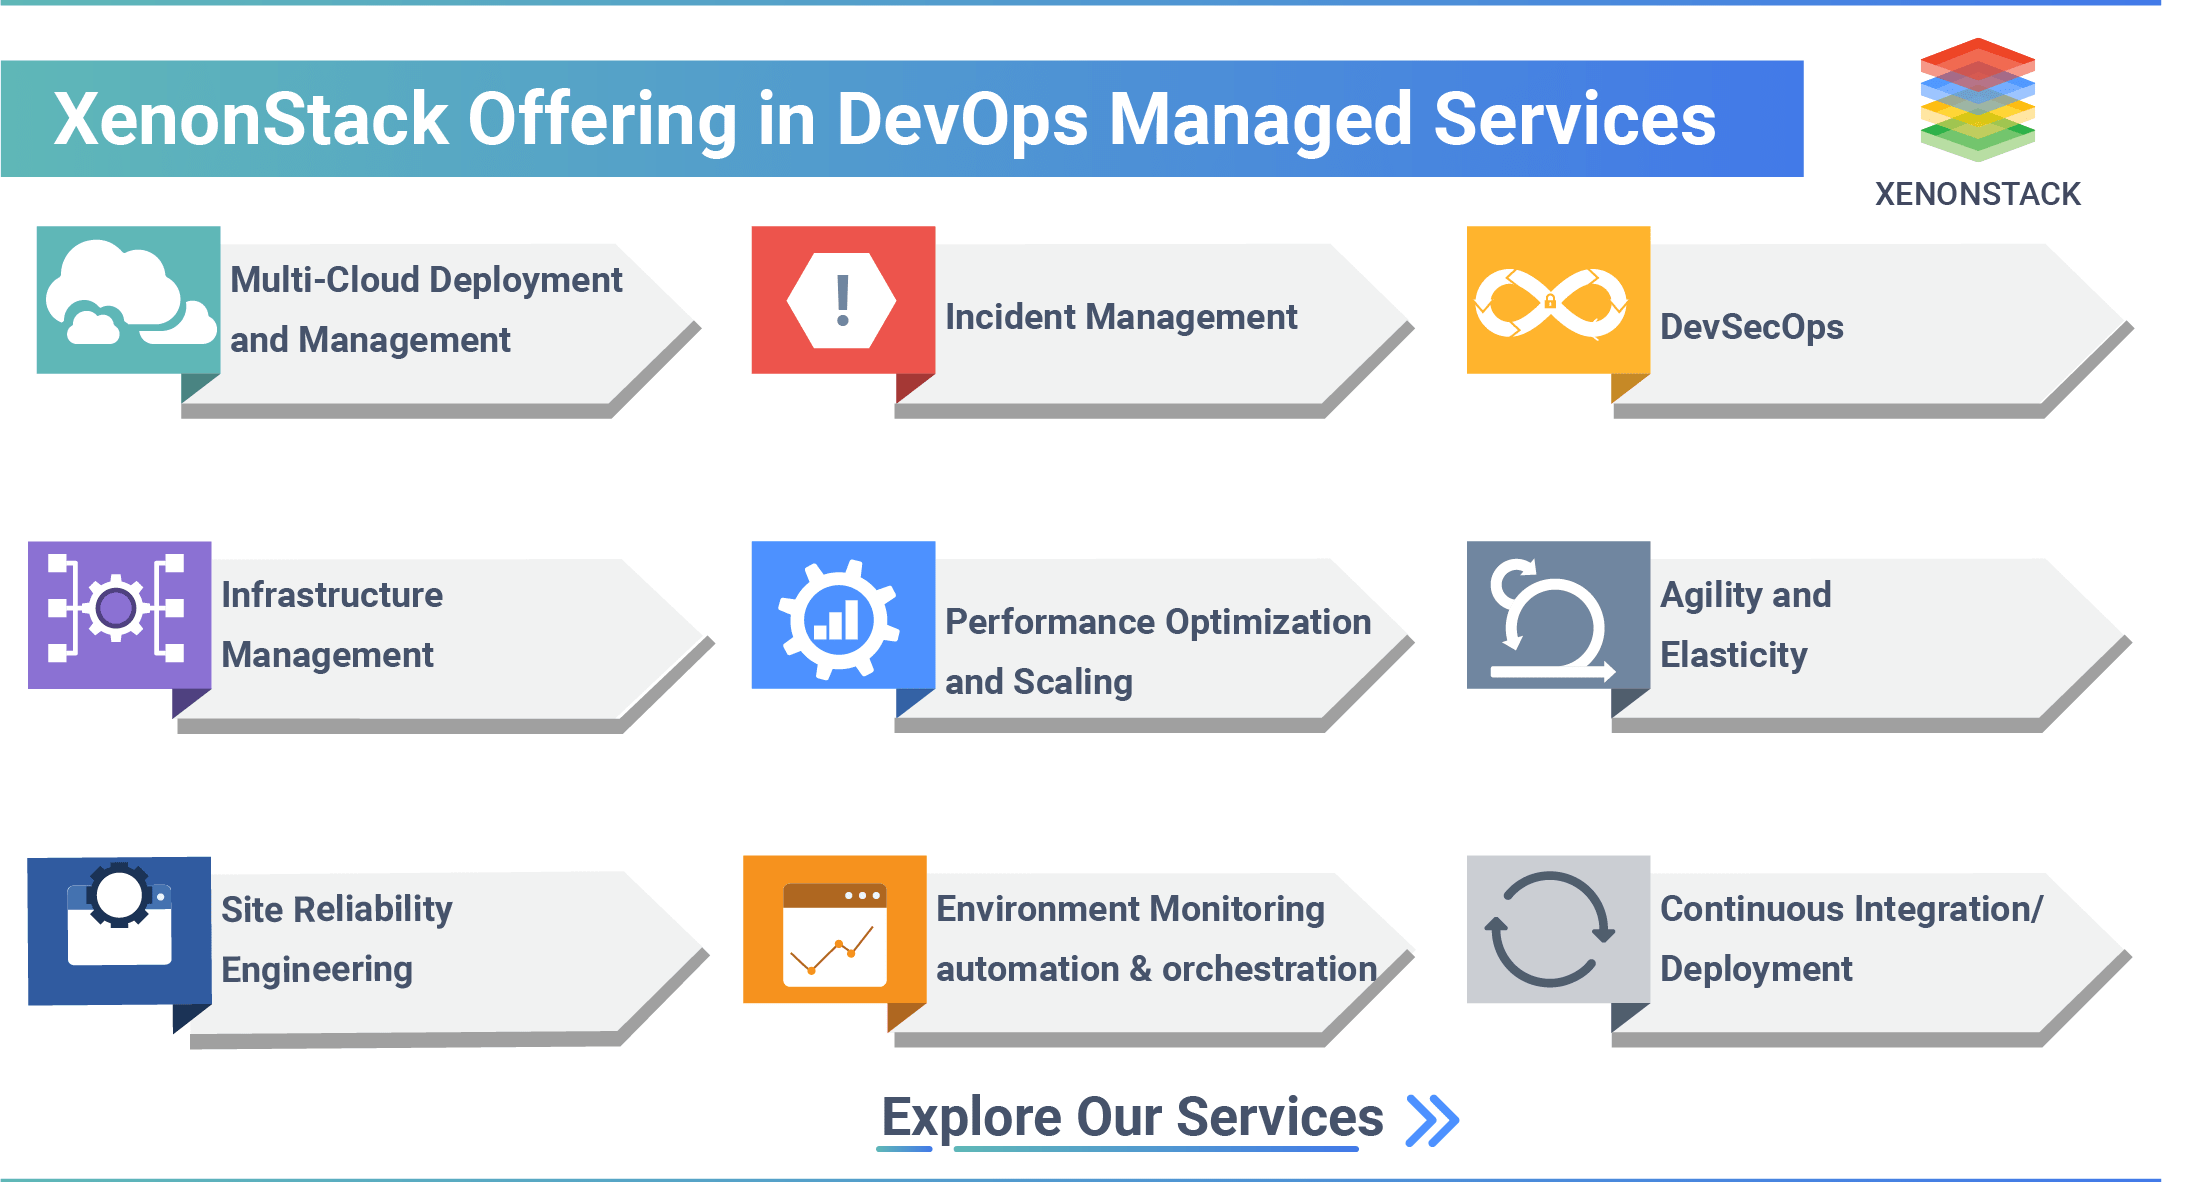 Xenonstack offering in devops managed services